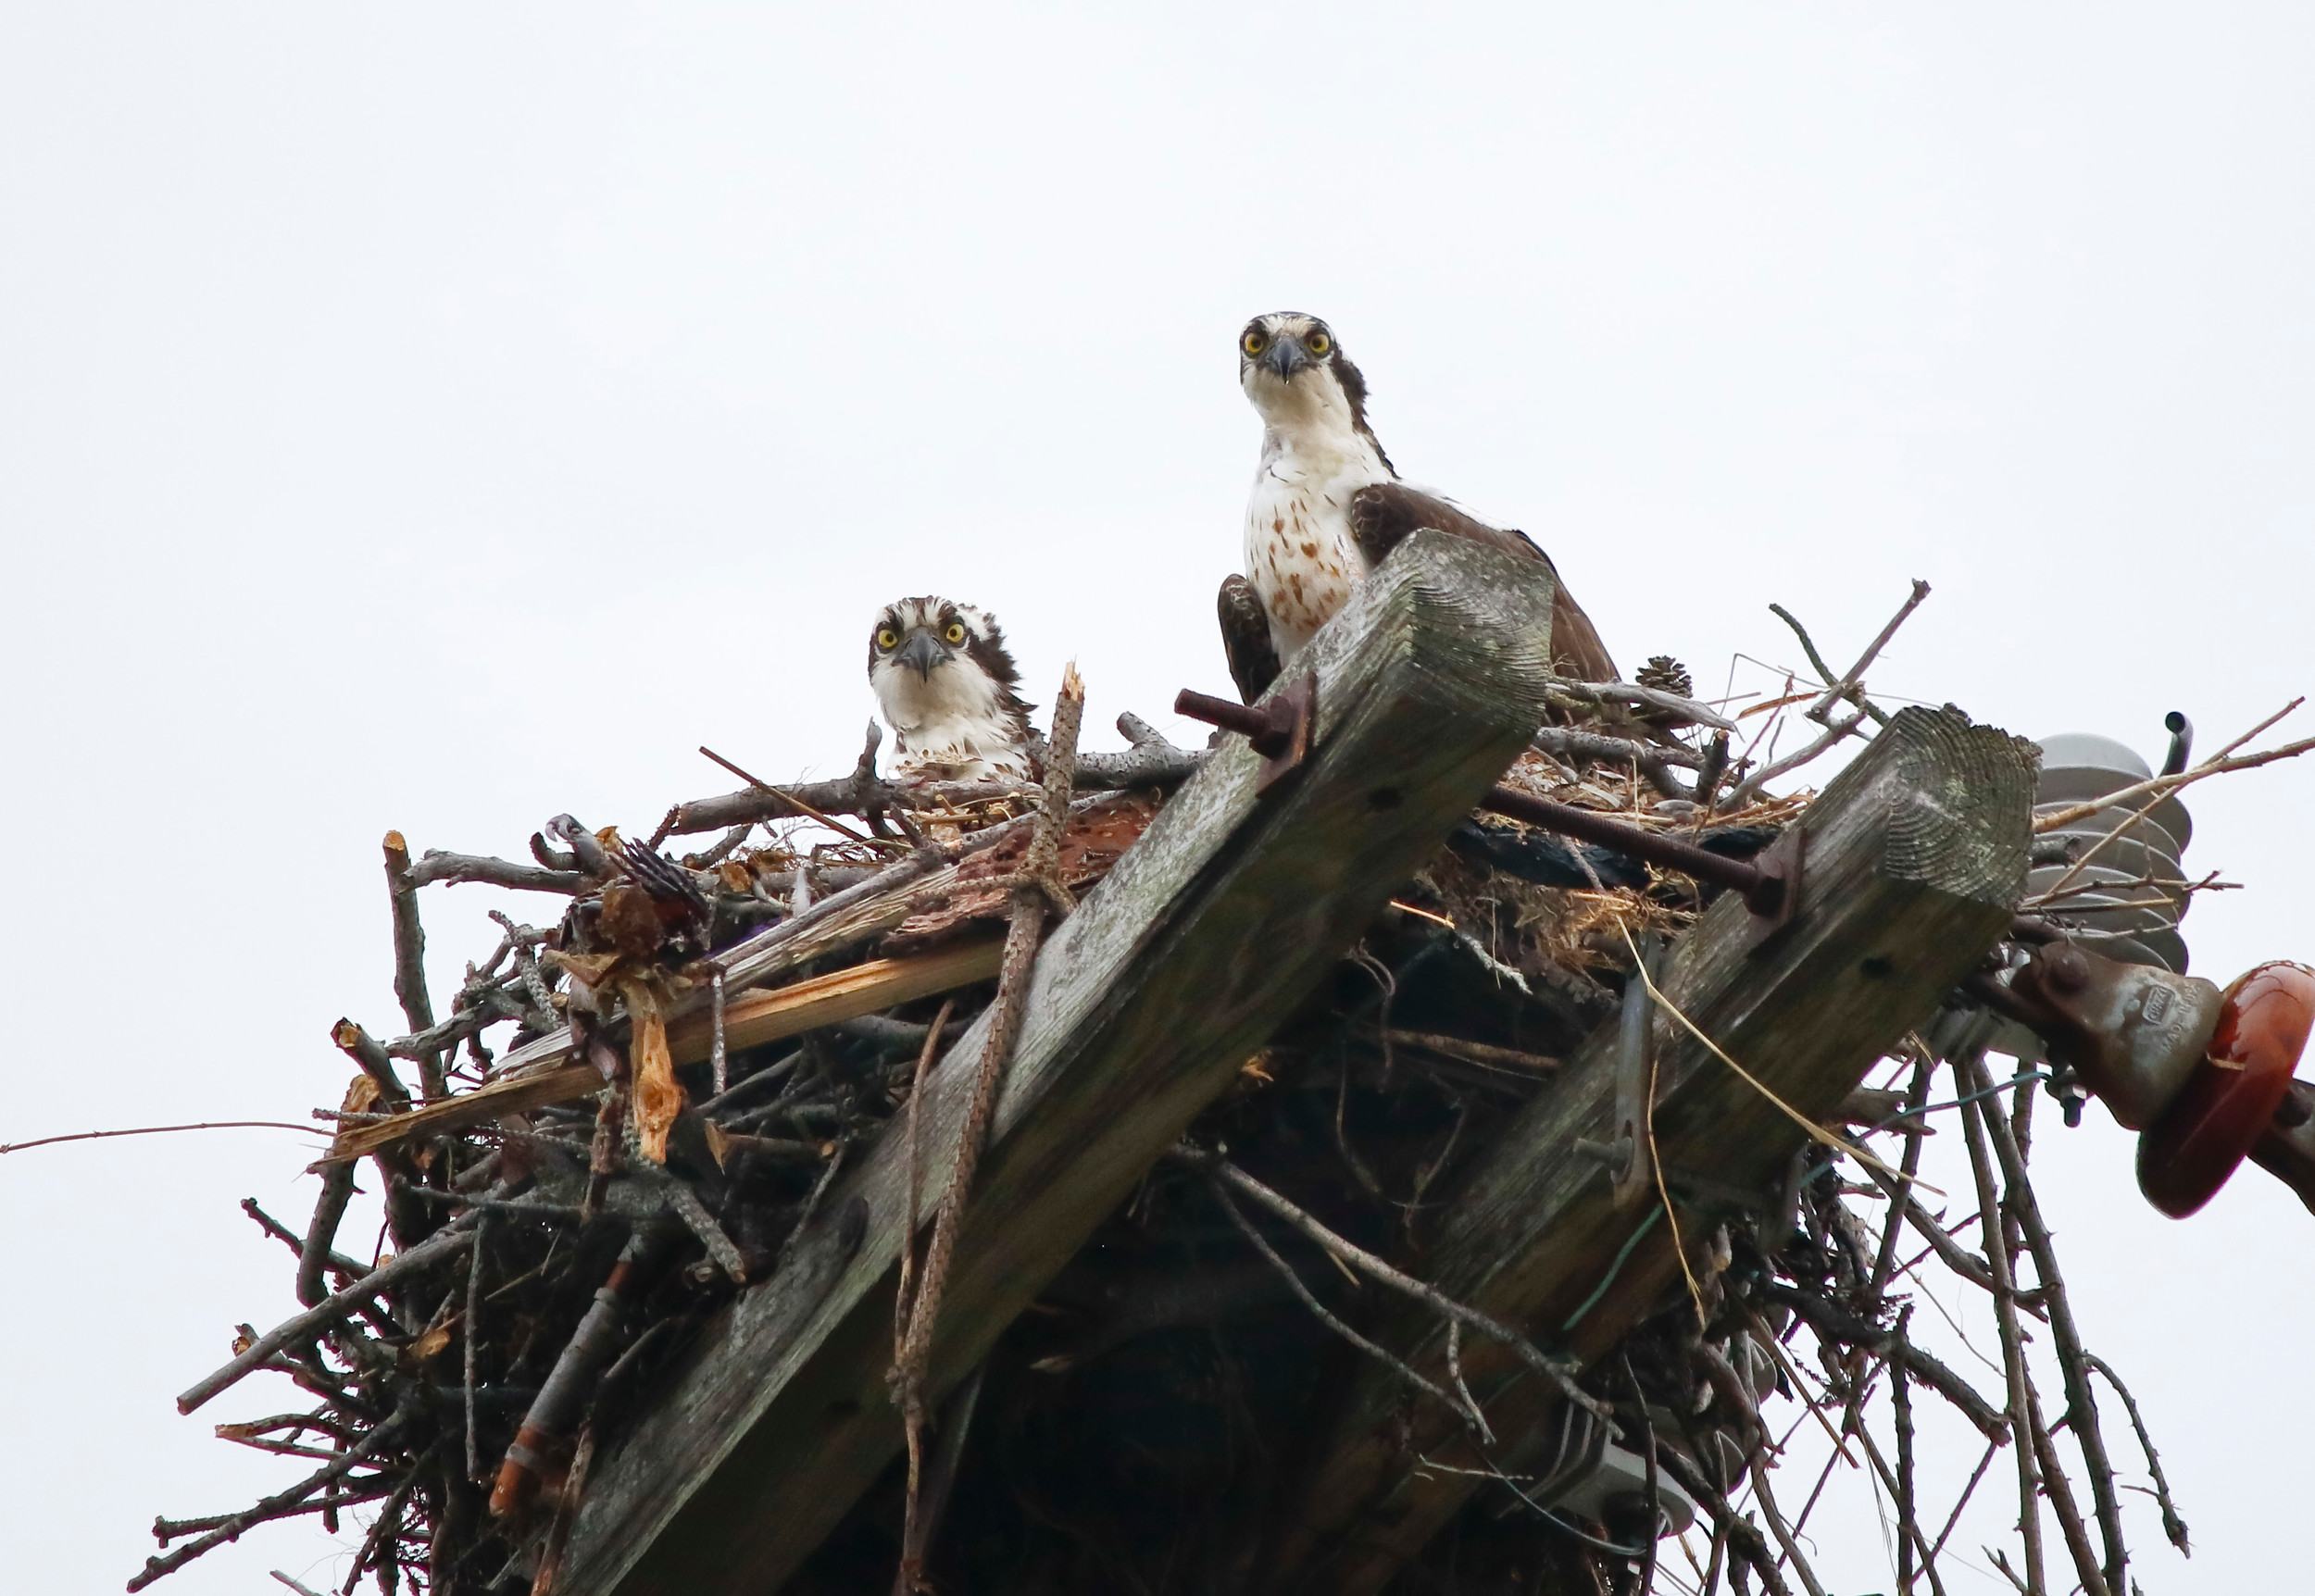 A breeding pair of osprey have made their home on a nesting platform at the Oceanside Marine Nature Study Area.